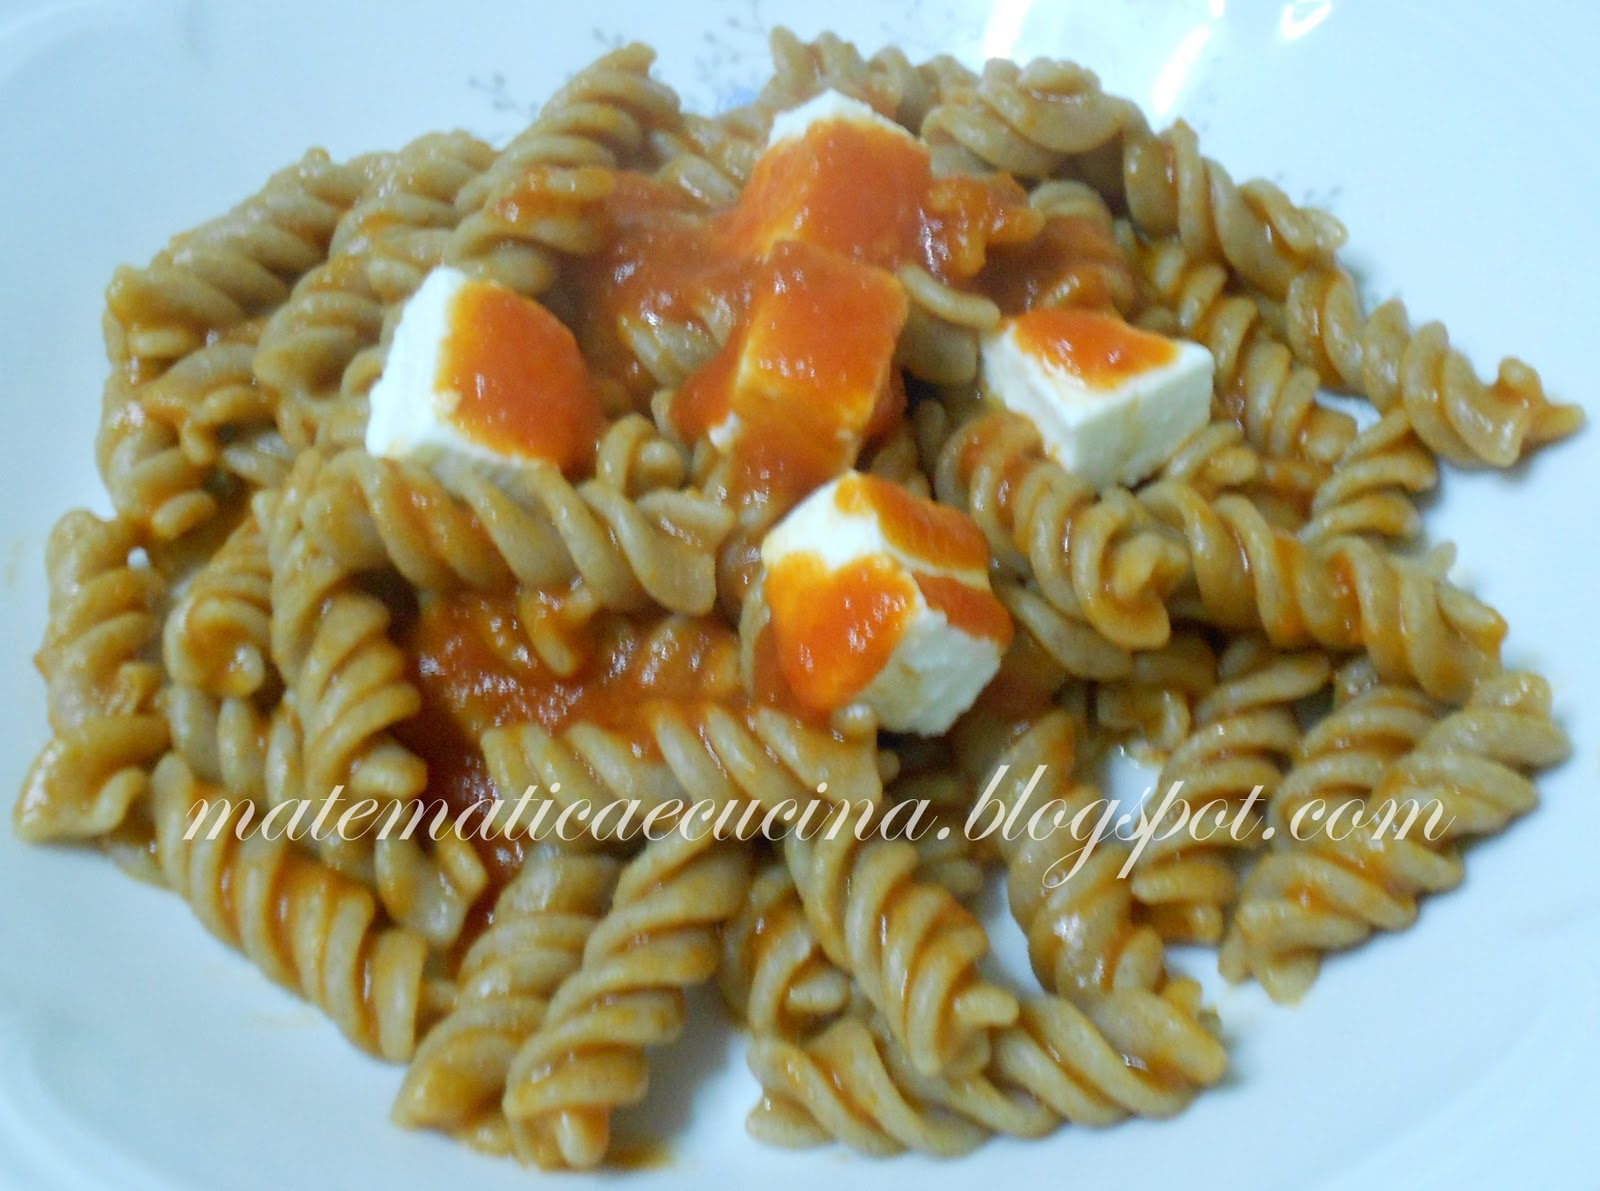 Fusilli di farro integrale con ricotta blogs de cuisine for Cuisine integrale